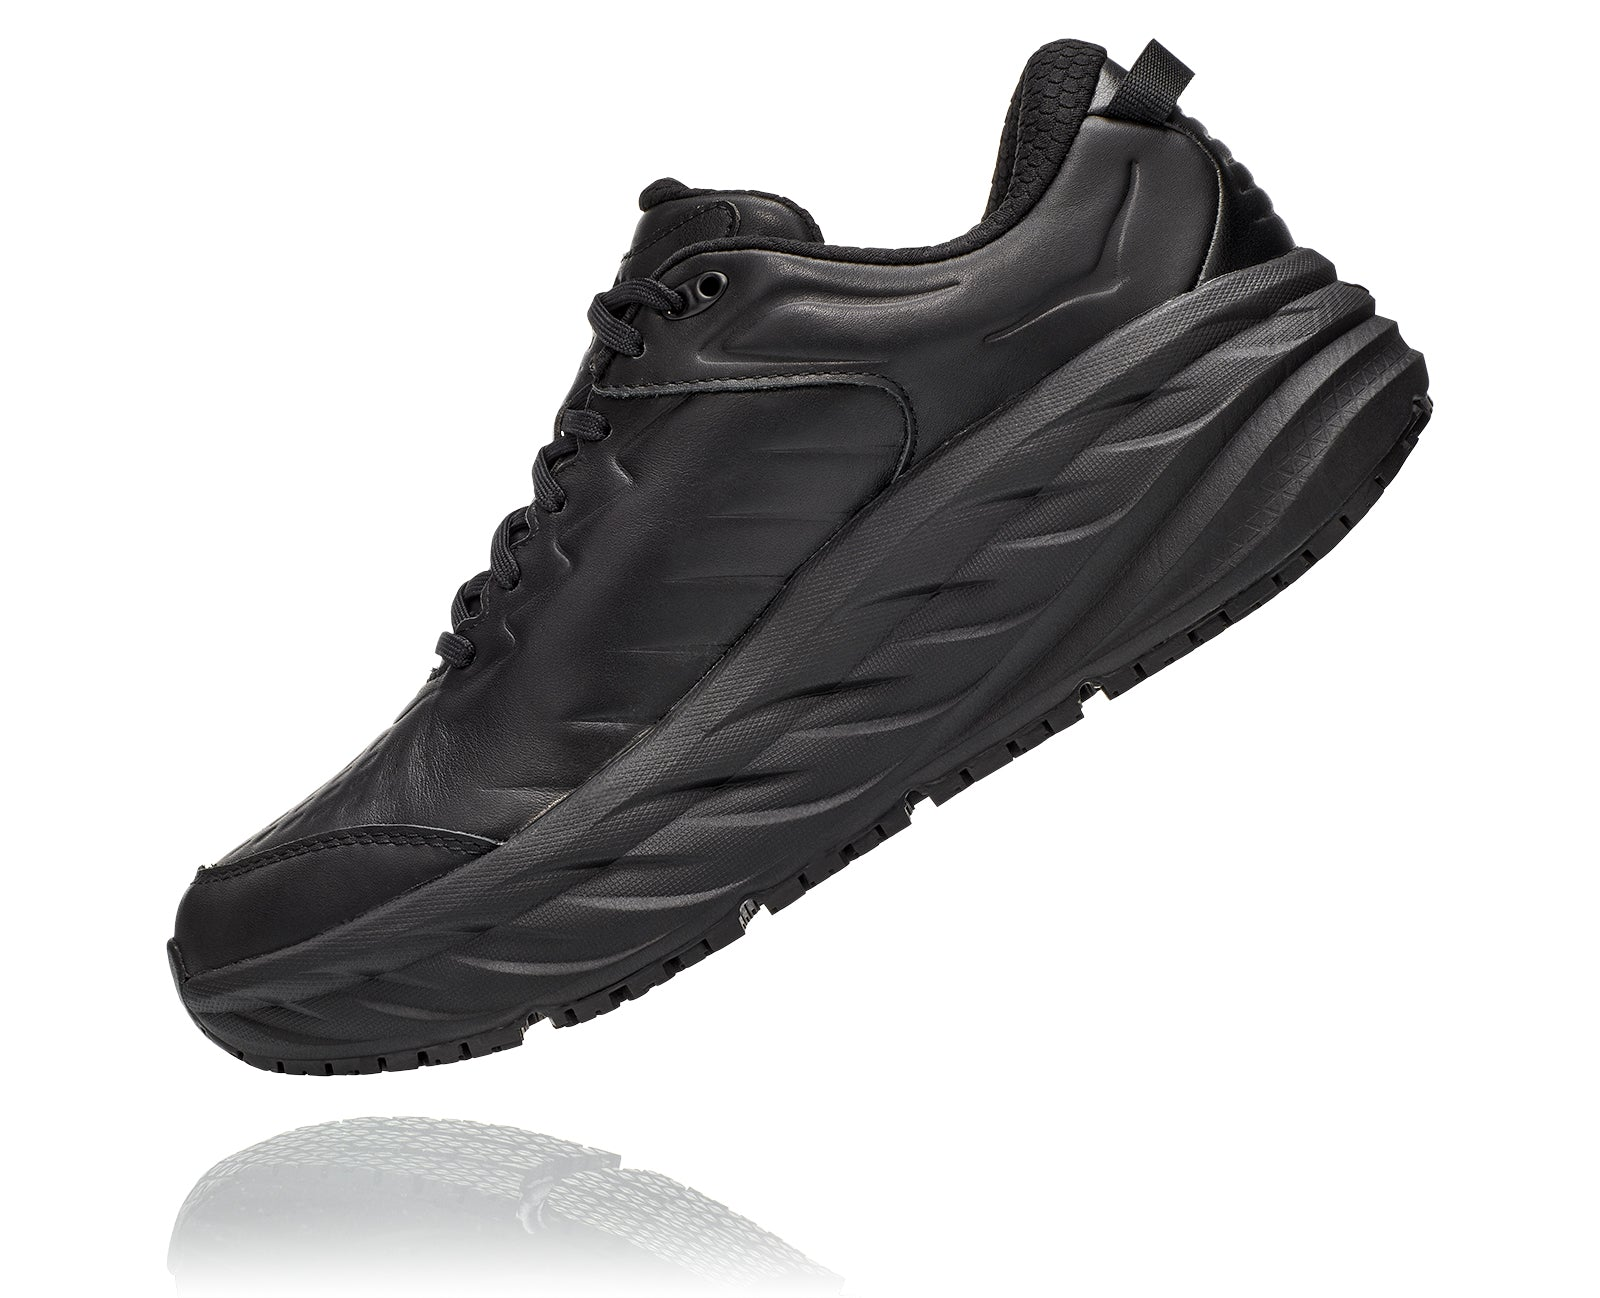 Hoka Men's Bondi SR